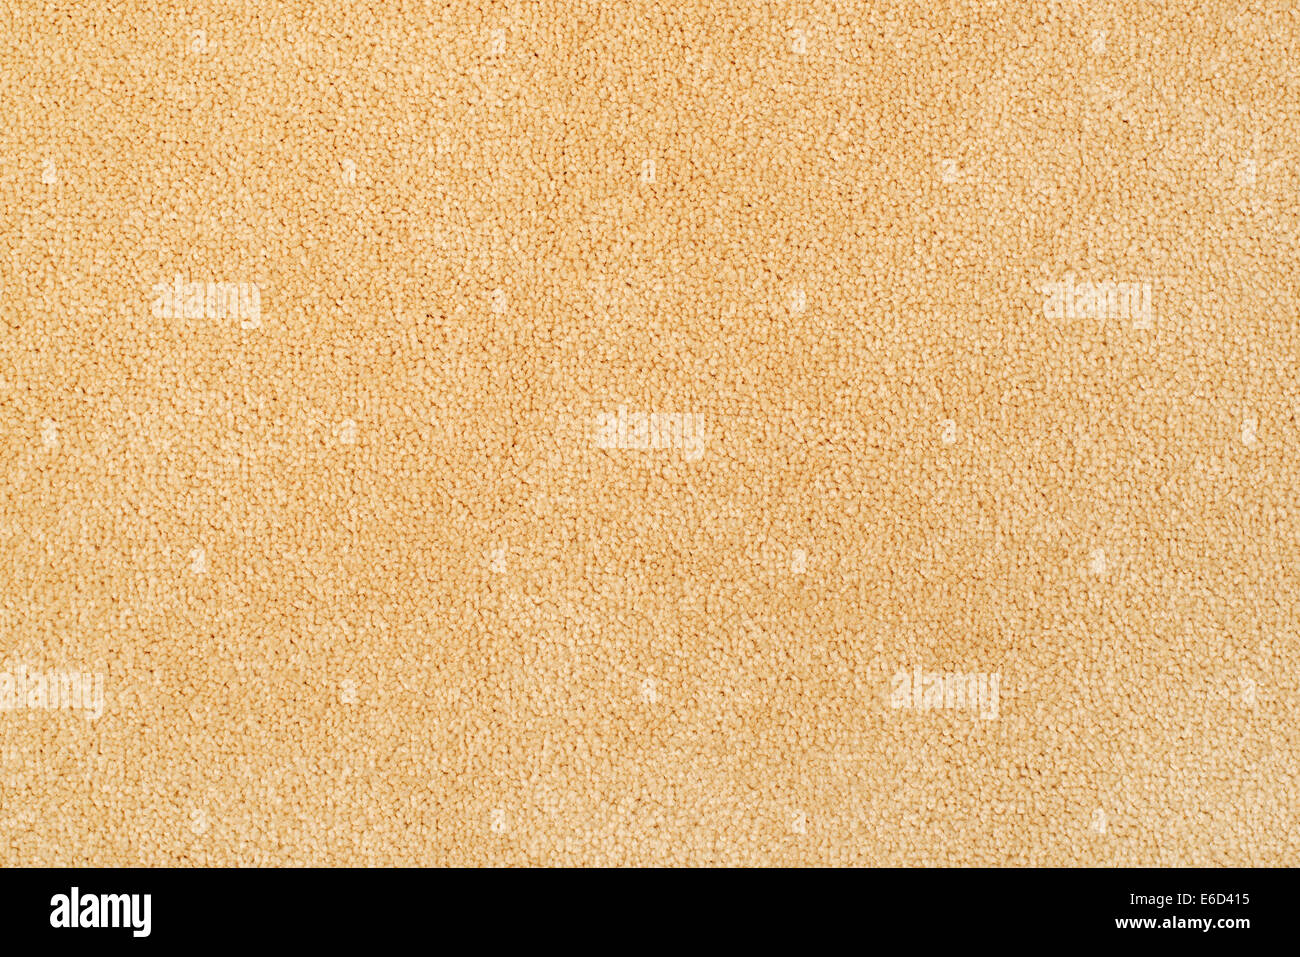 New Carpet Texture Bright Flooring As Seamless Background